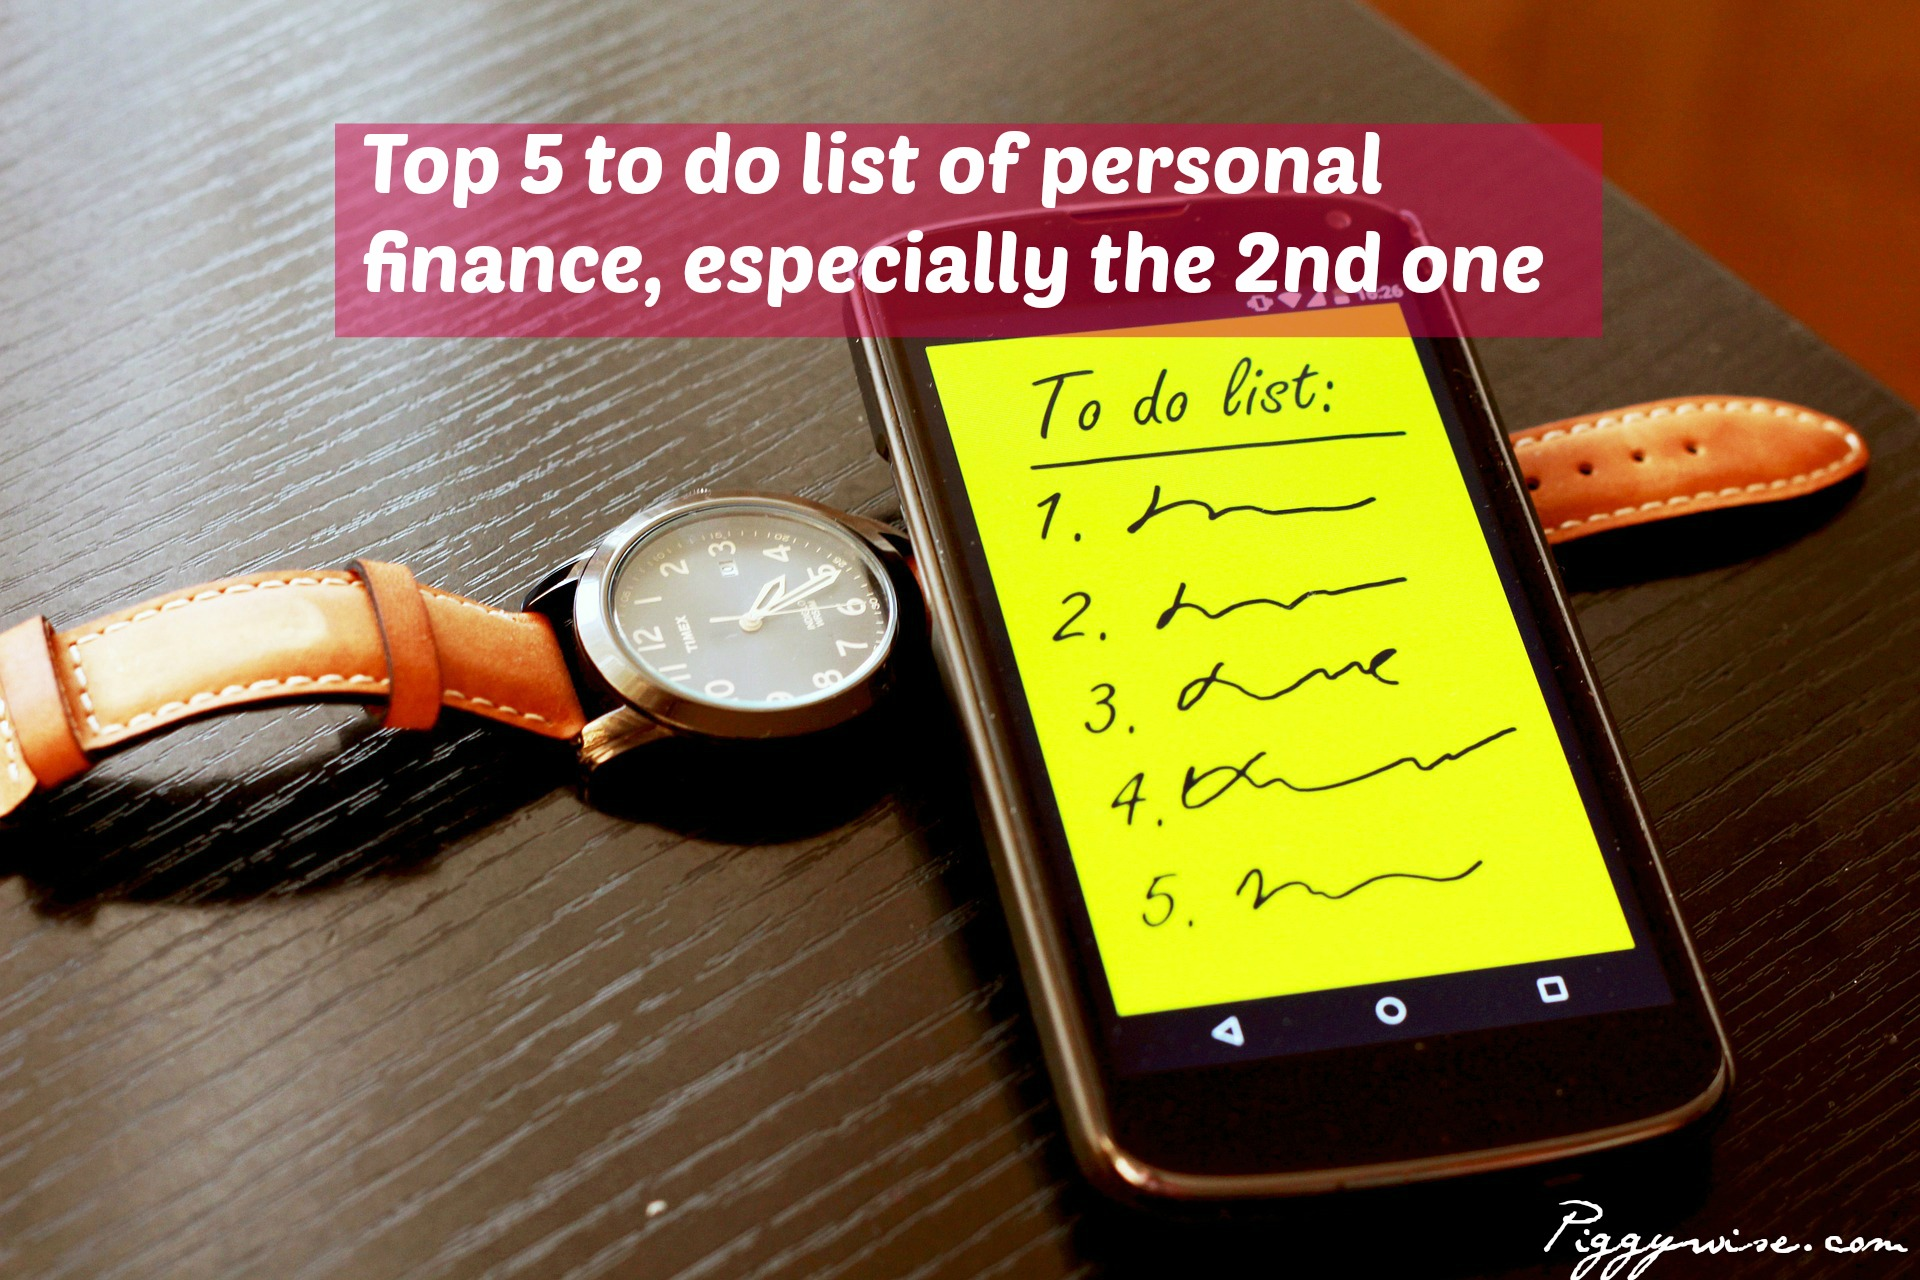 Top 5 to do list of personal finance, especially the 2nd one